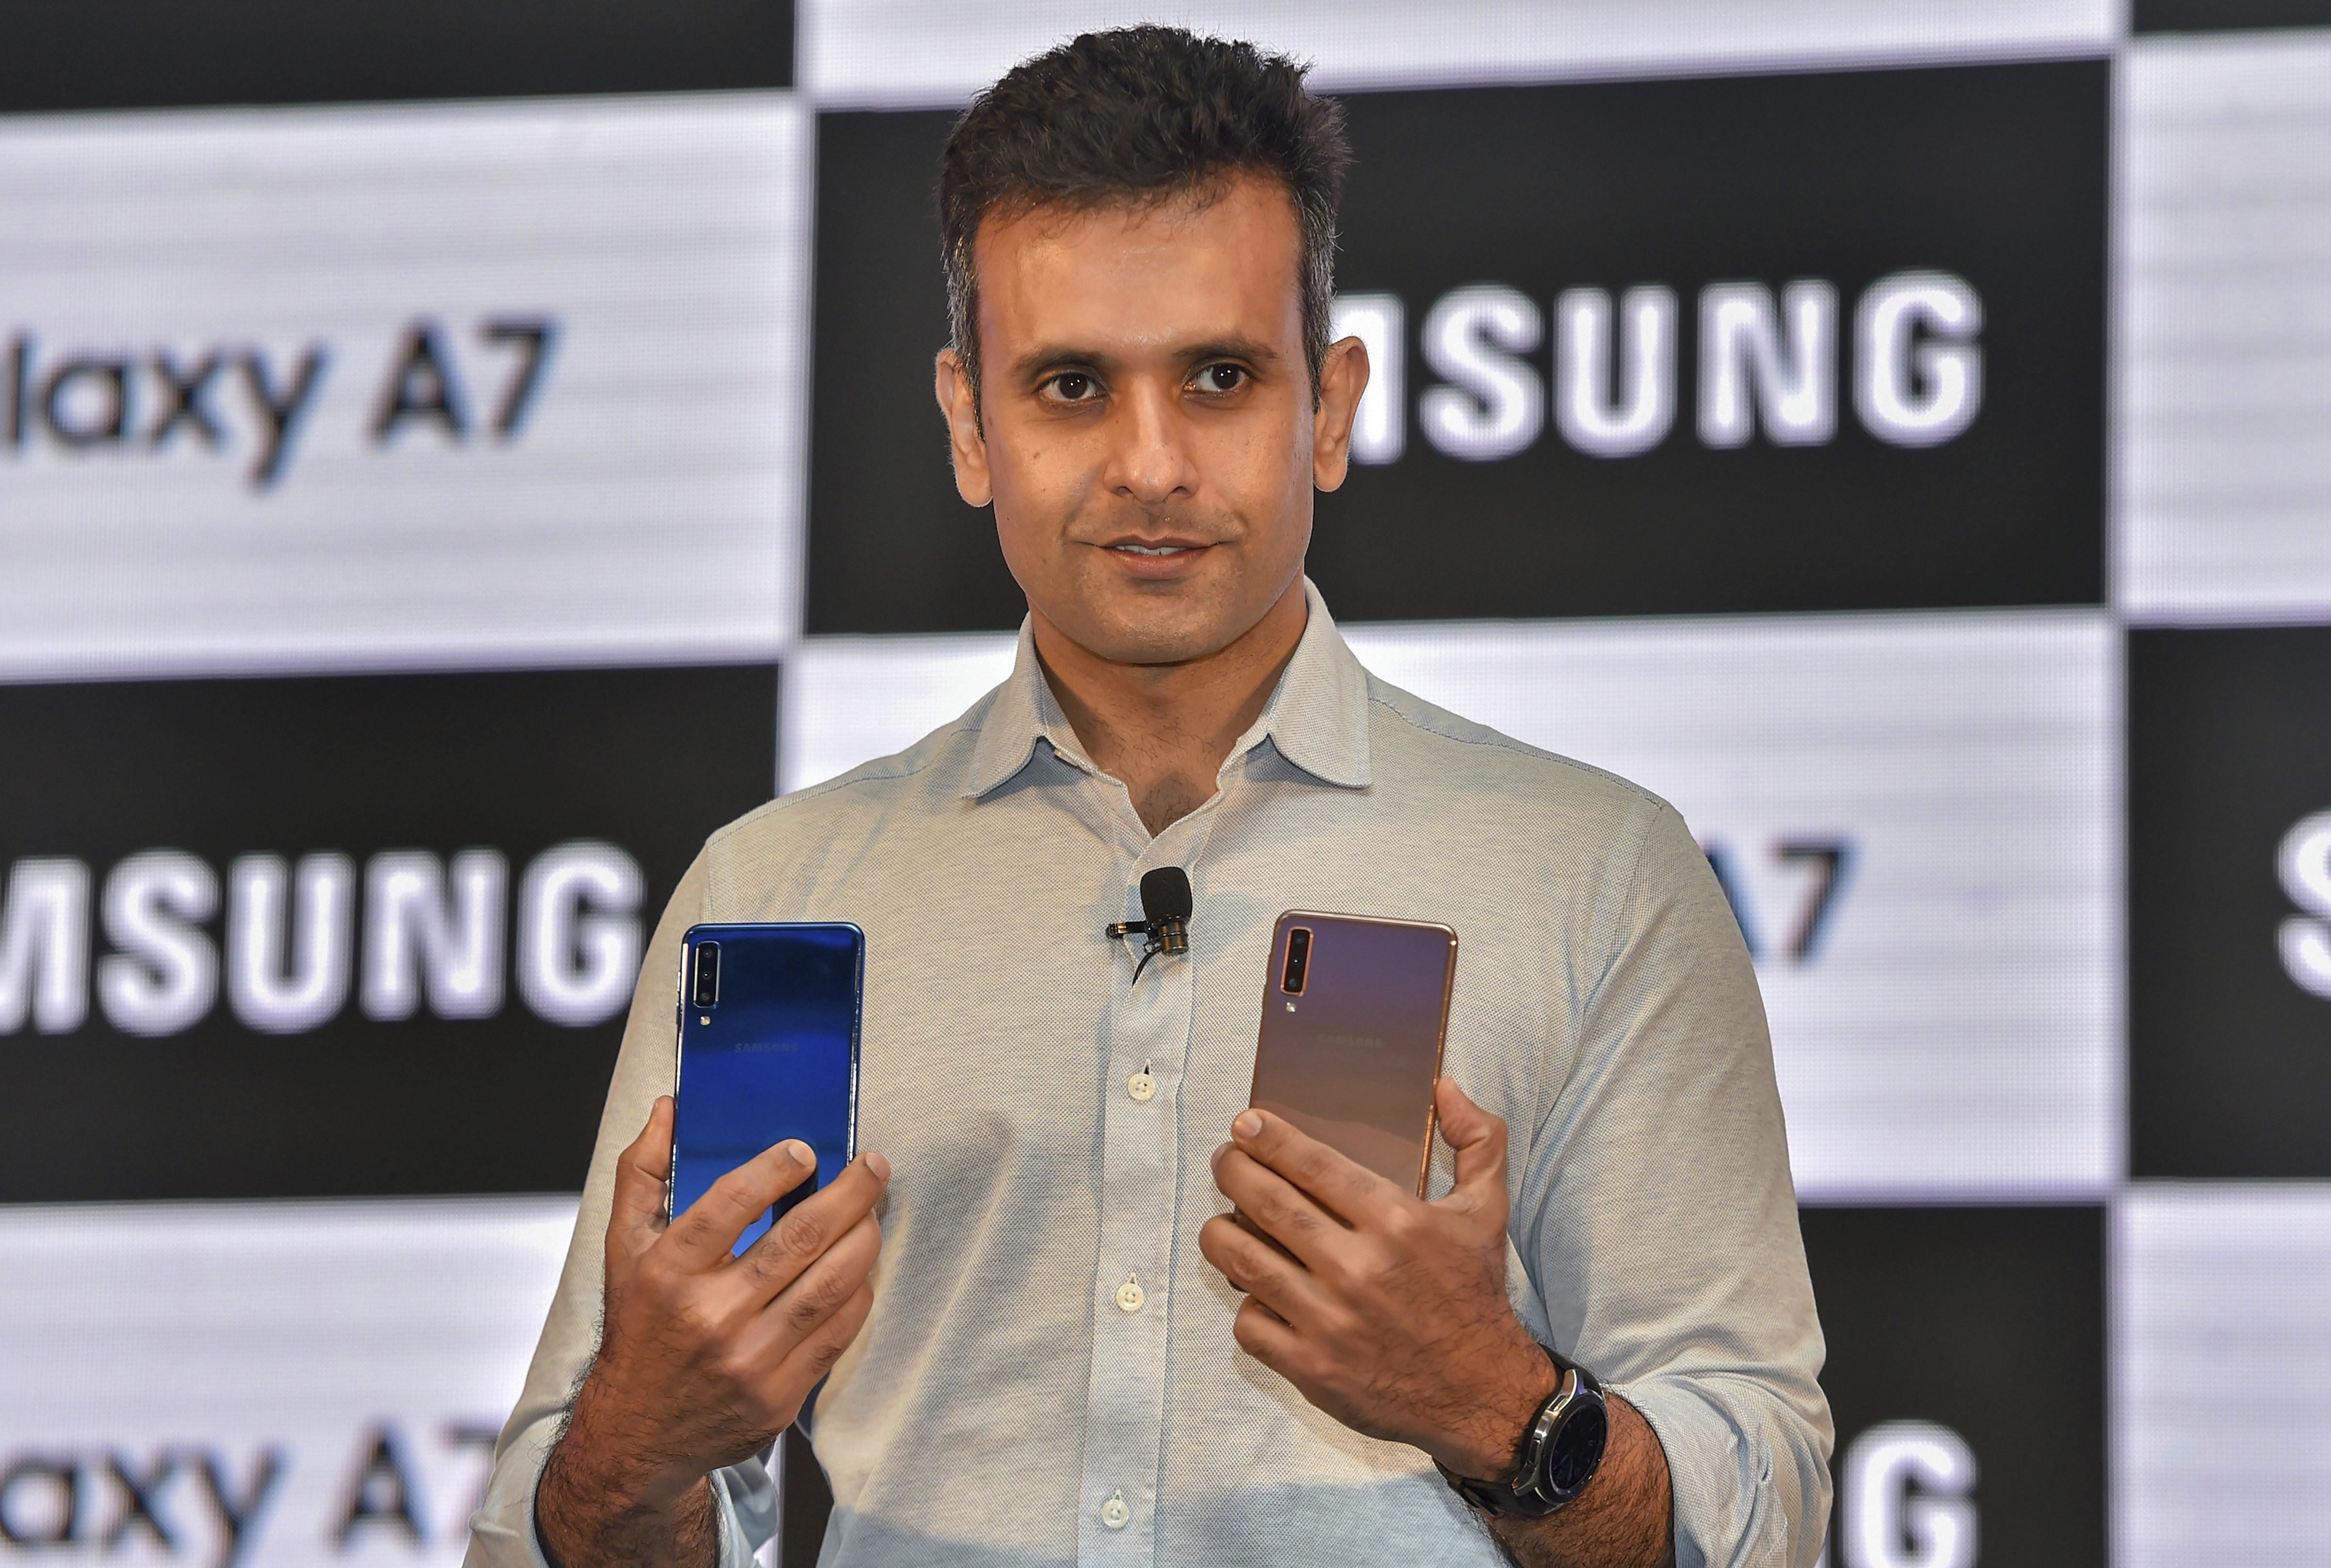 Samsung India Director, Mobile business, Sumit Walia poses for photos during the launch of company's first triple camera smartphone Galaxy A7, in New Delhi - PTI